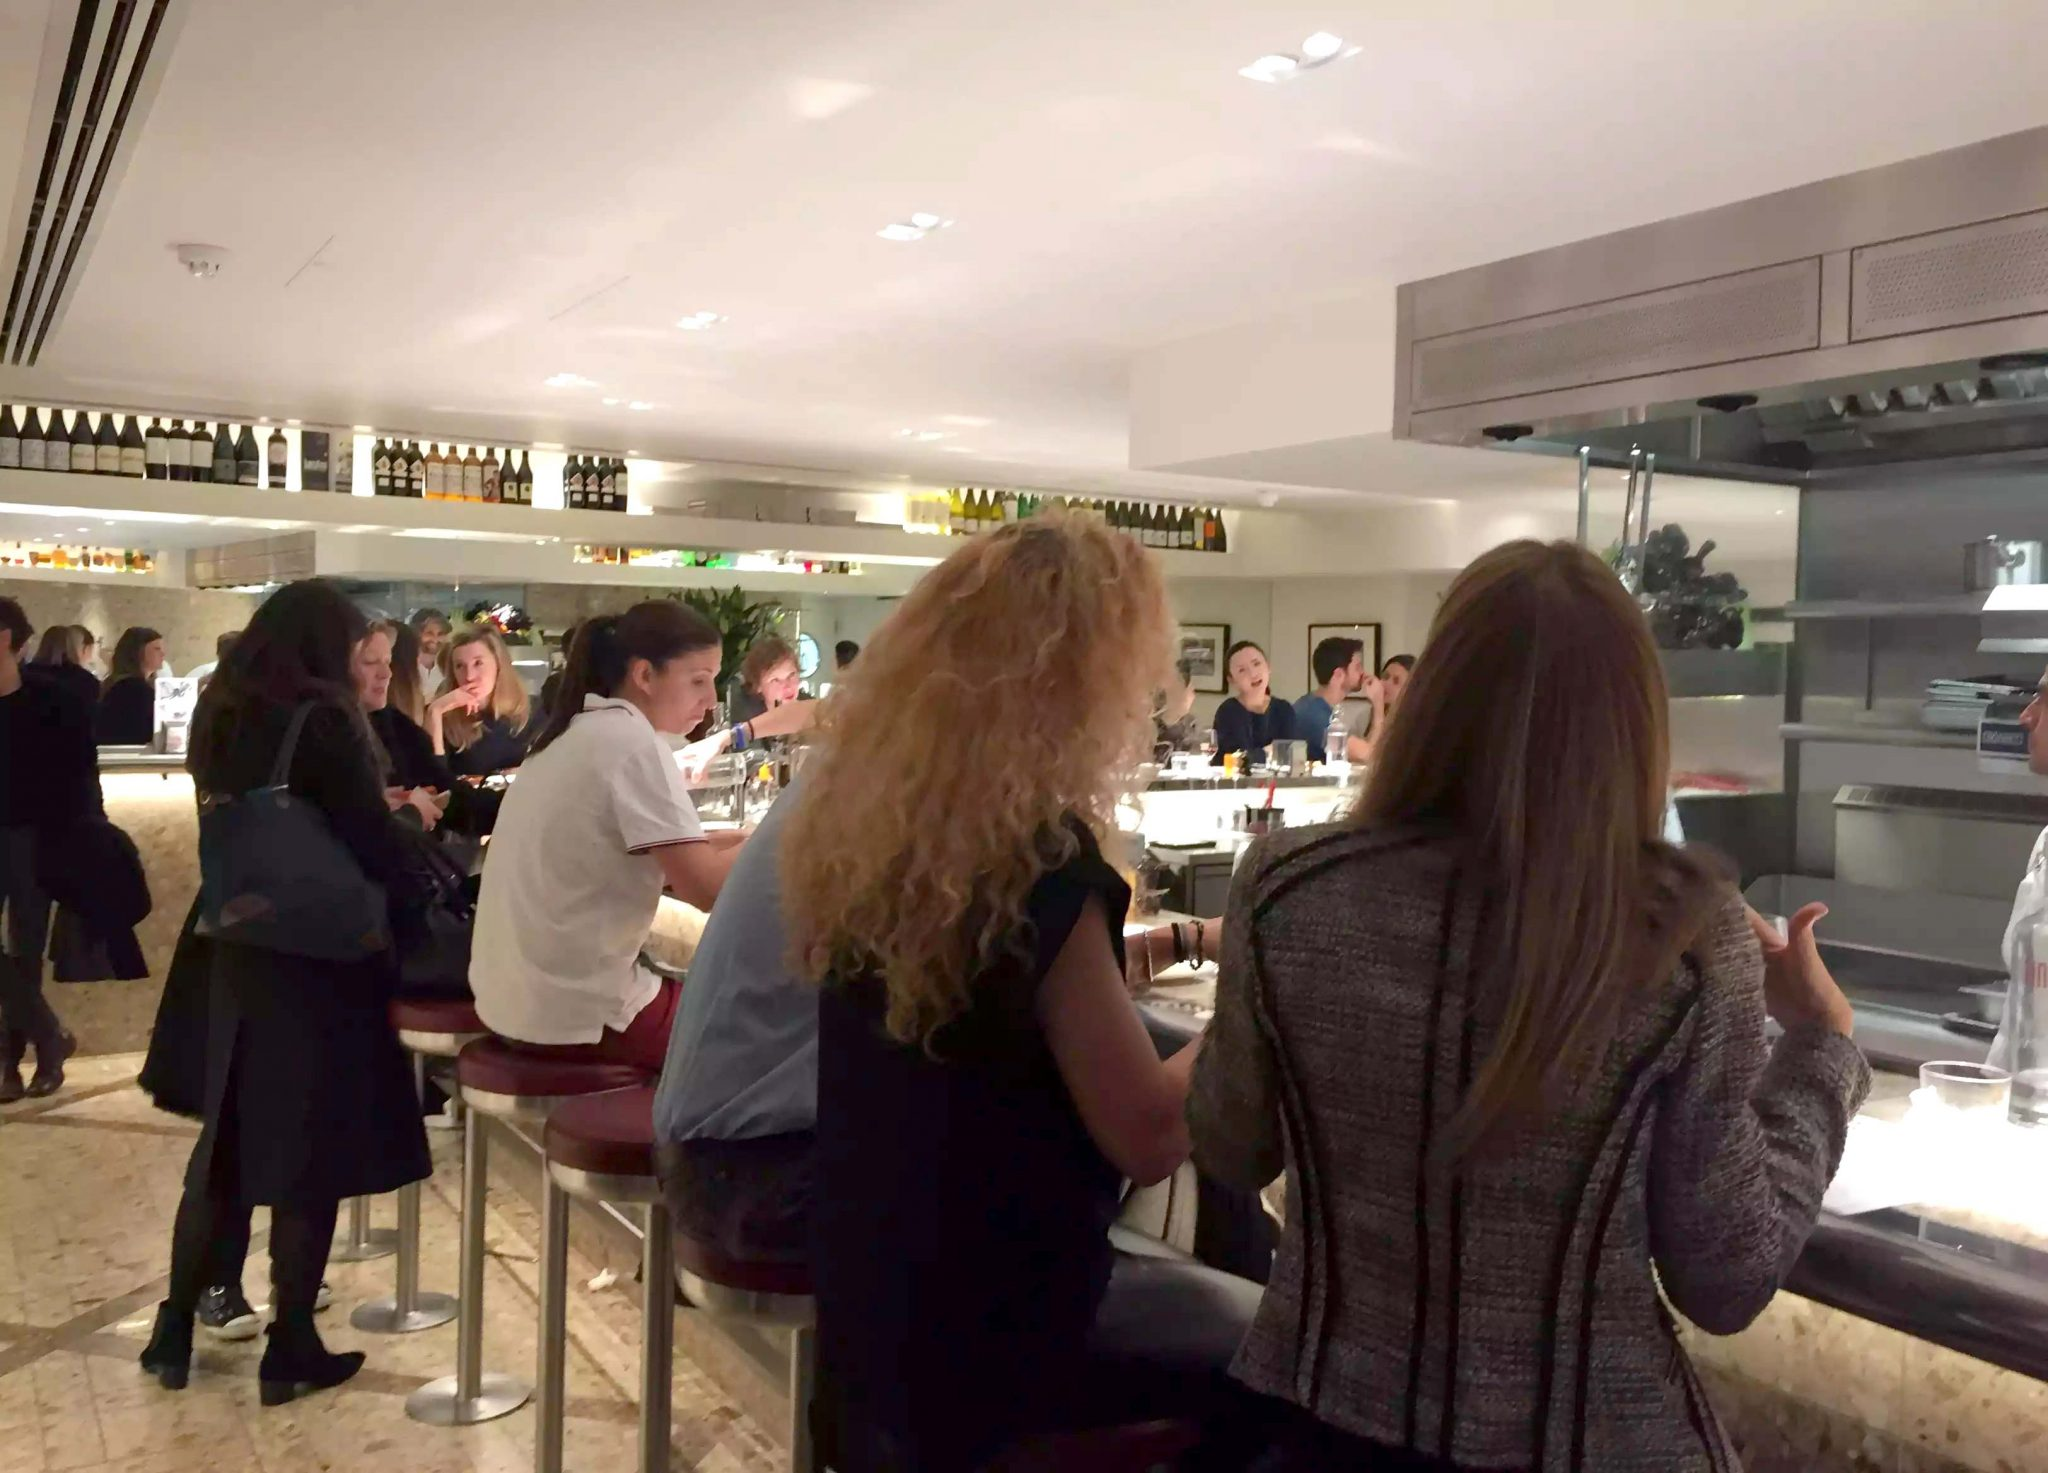 Barrafina Tapas Restaurant - Dean St, Soho, London by Emma Eats & Explores